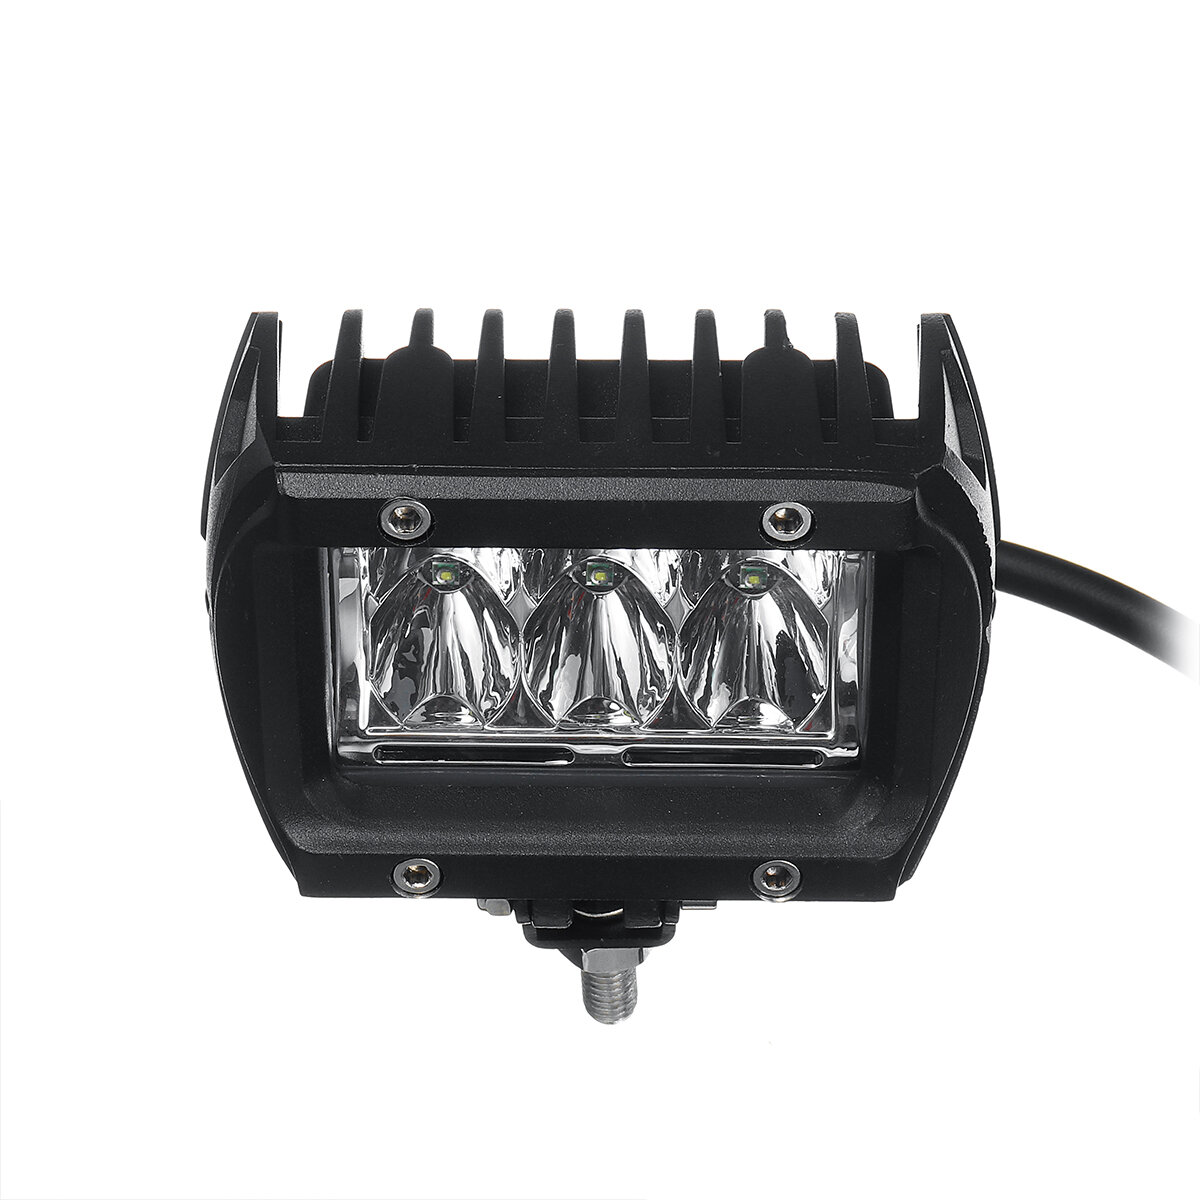 LMGAO 4 Inch 60W Combo Led Light Bars Spot Flood Beam LED Work Light Bar Waterproof For Driving Offroad Boat Car Tractor Truck SUV ATV